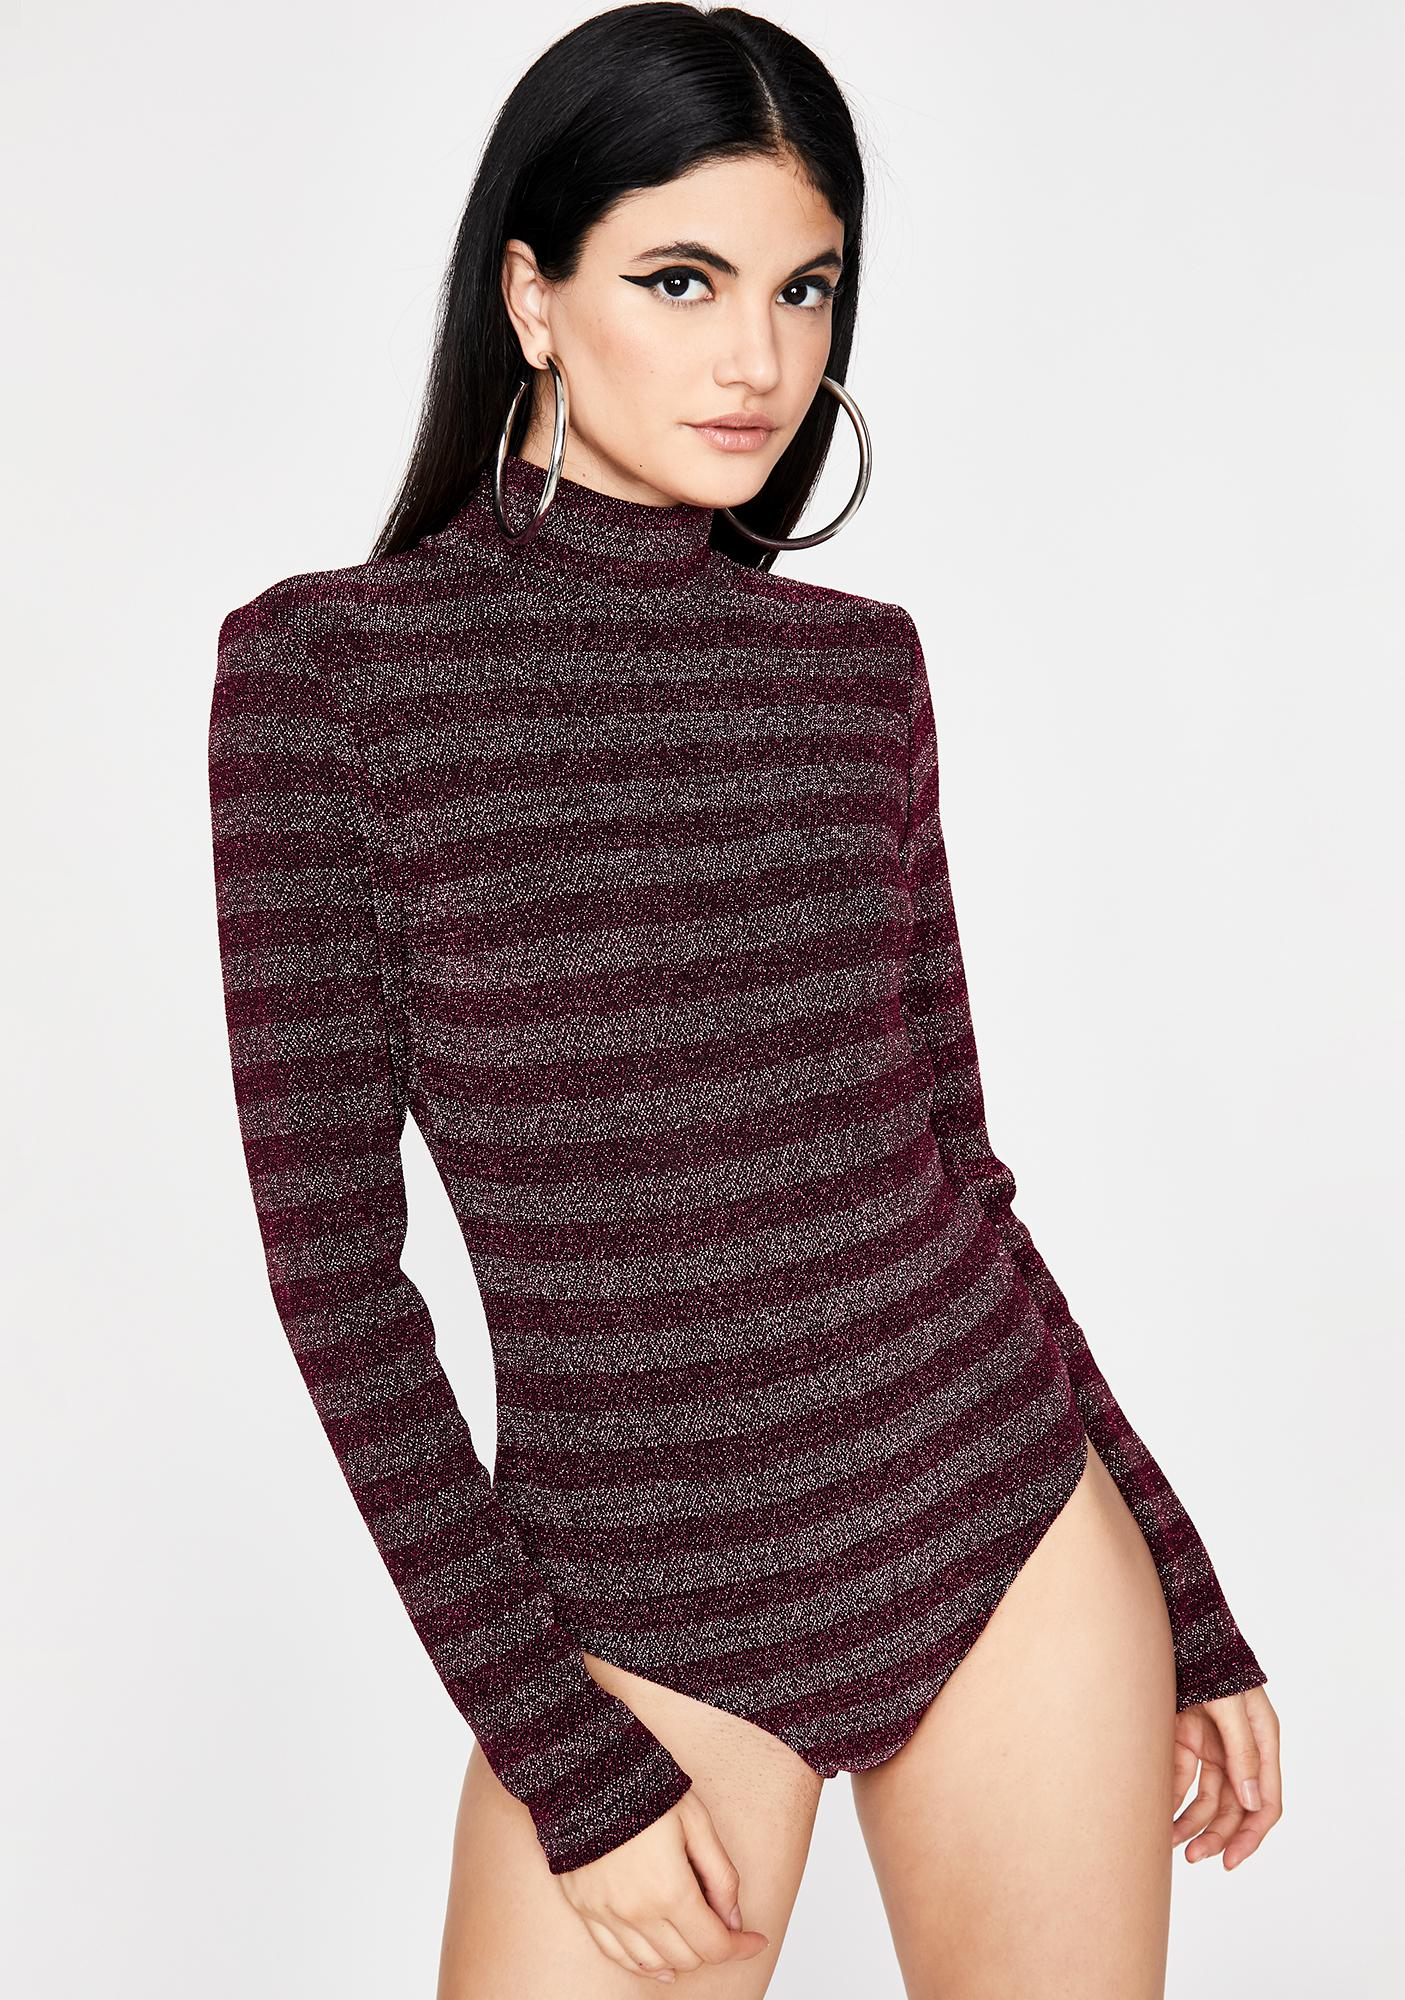 Pinot Not Your Girl Striped Bodysuit